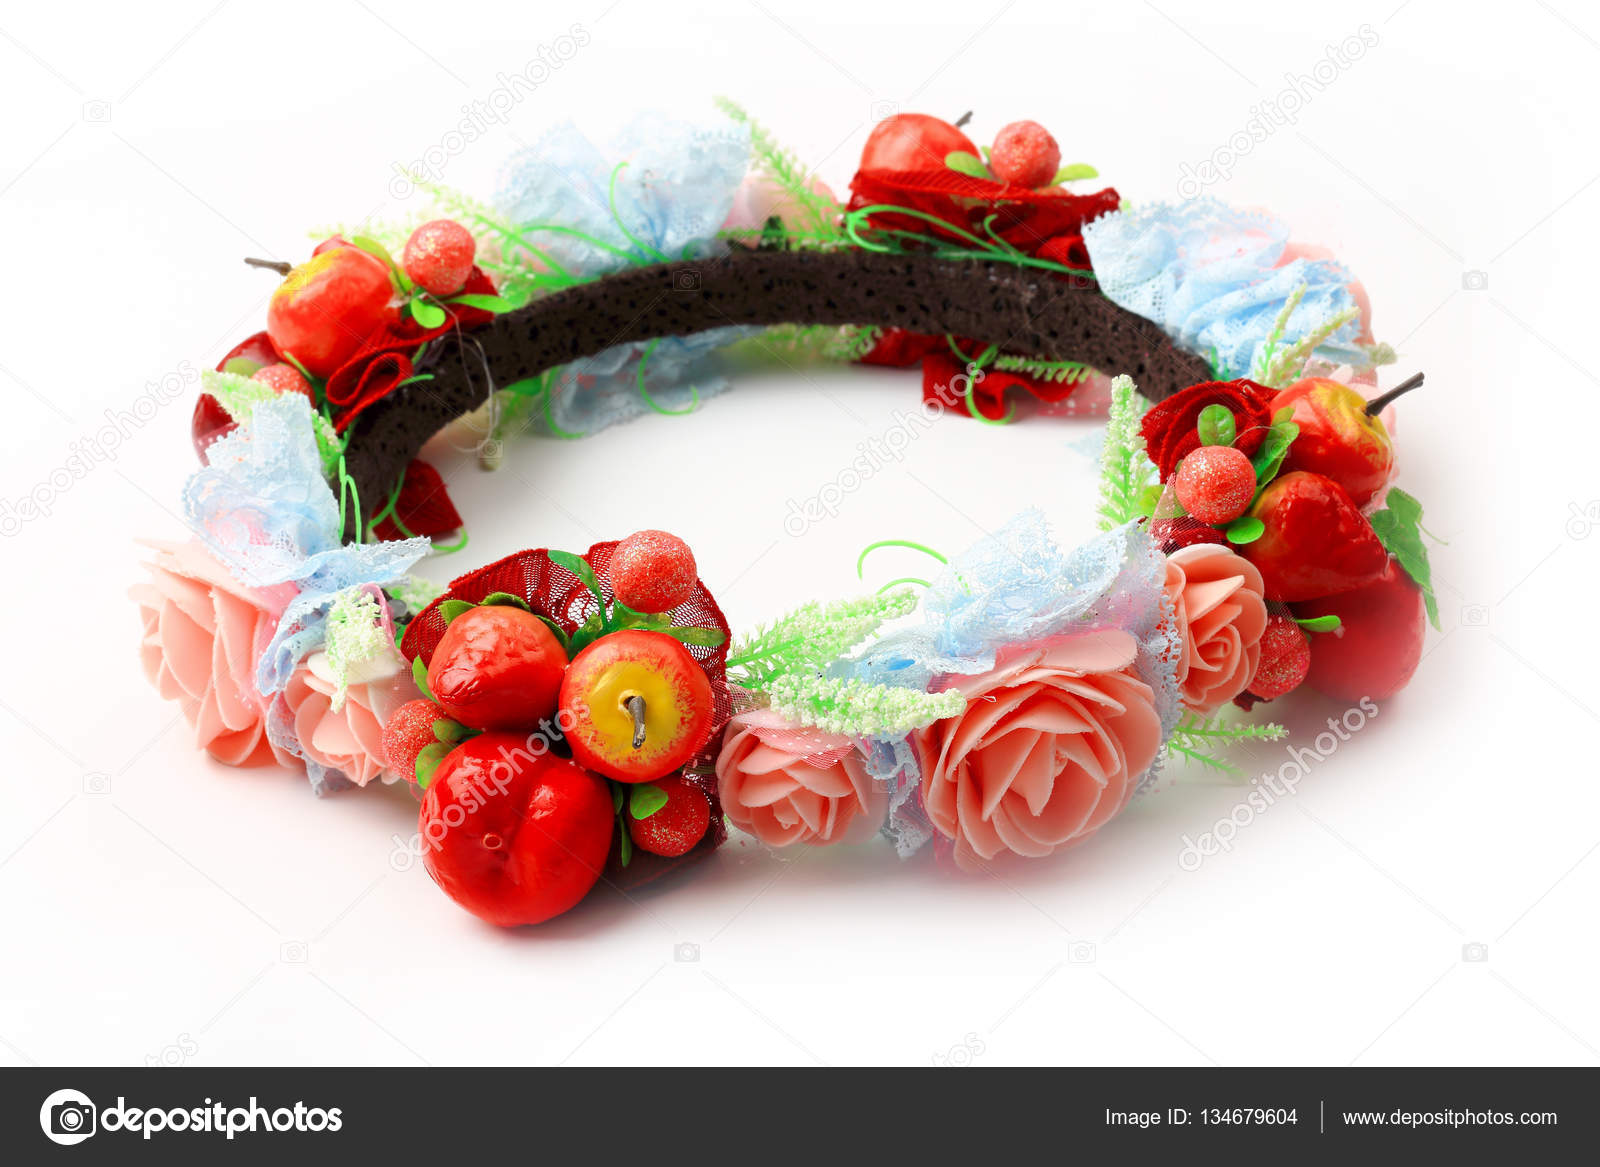 Fake flower crown or forest coronal isolated on white stock photo colorful fake flower crown or forest coronal isolated on white background photo by kongsky izmirmasajfo